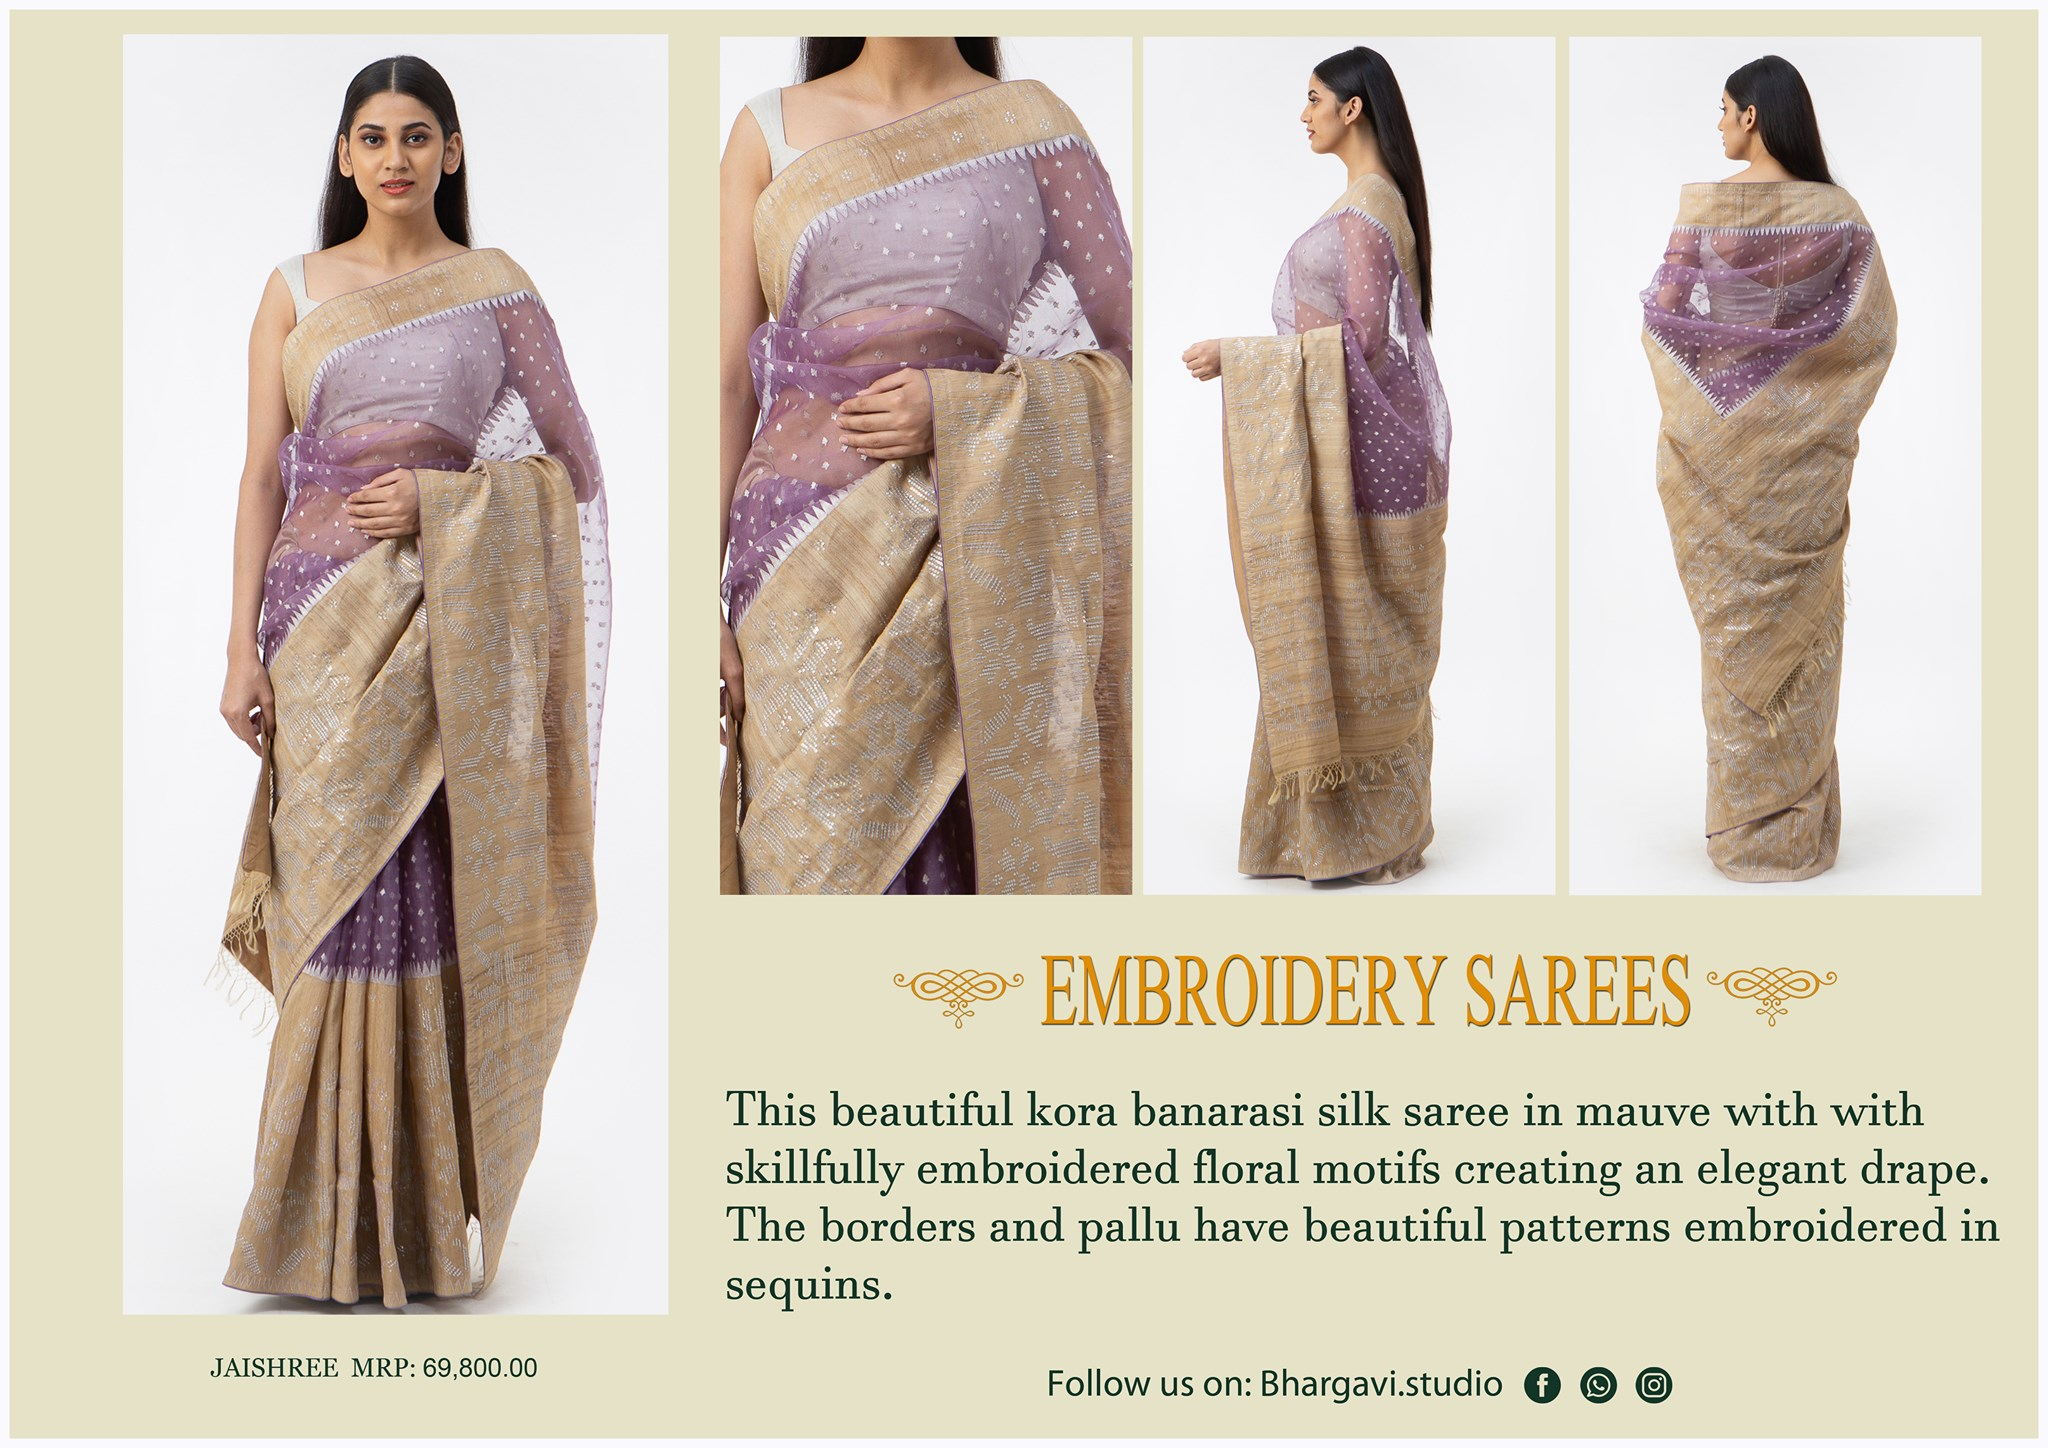 This beautiful kora benaras silk saree in mauve with skillfully embroidered floral motifs creating and elegant drape. The boarders and pallu have beautiful patterns embroidered in sequins.    2021-05-28